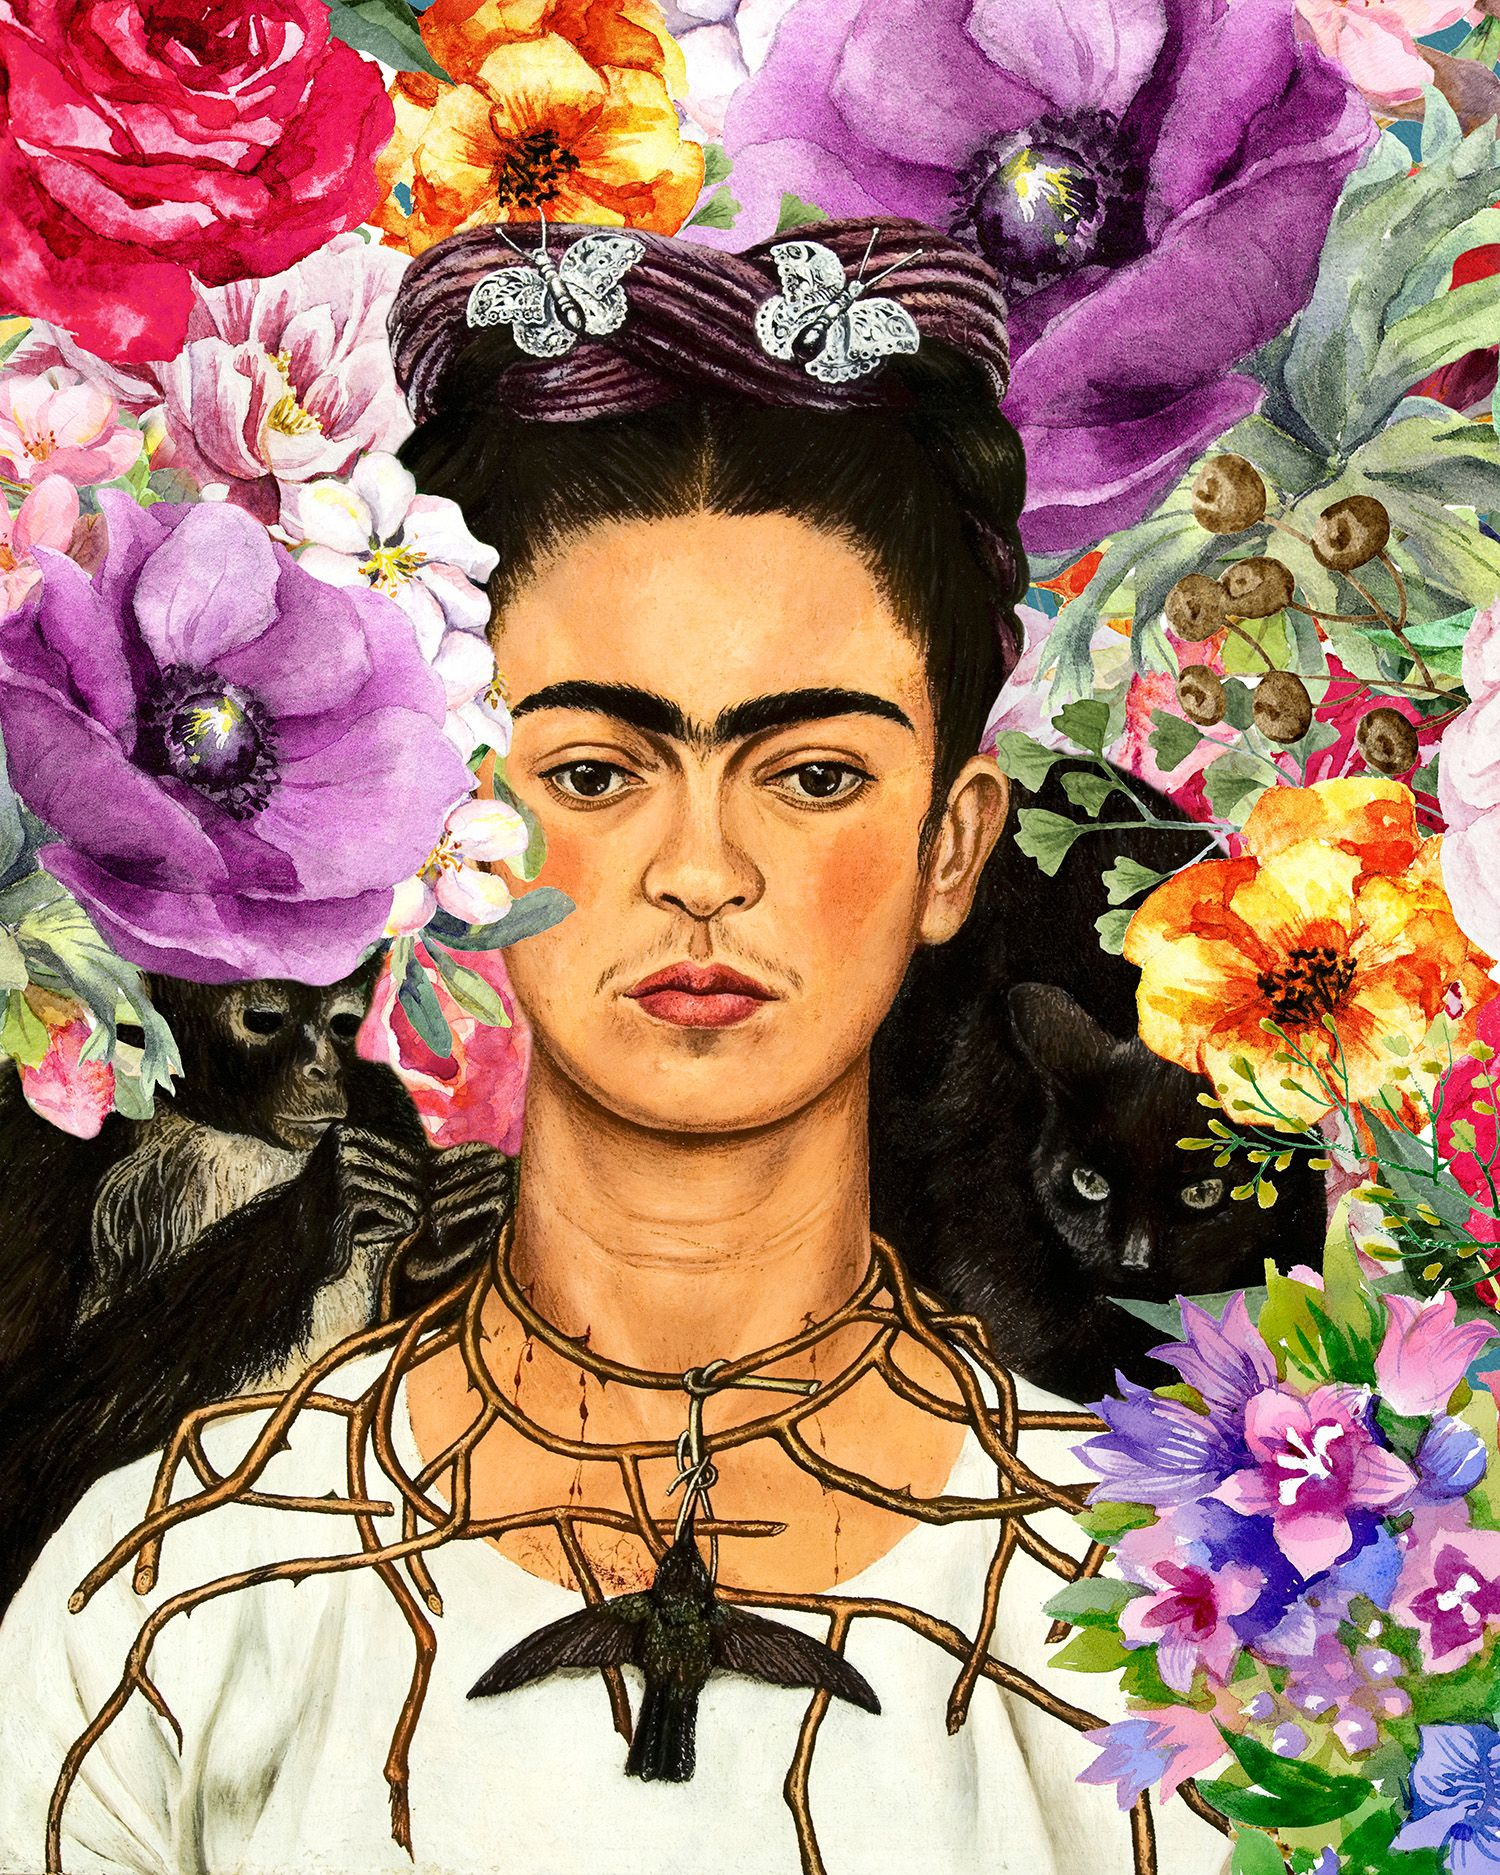 Frida Kahlo. Poster of Frida Kahlo inspired by one of this painting. Frida Kalho with flowers ...